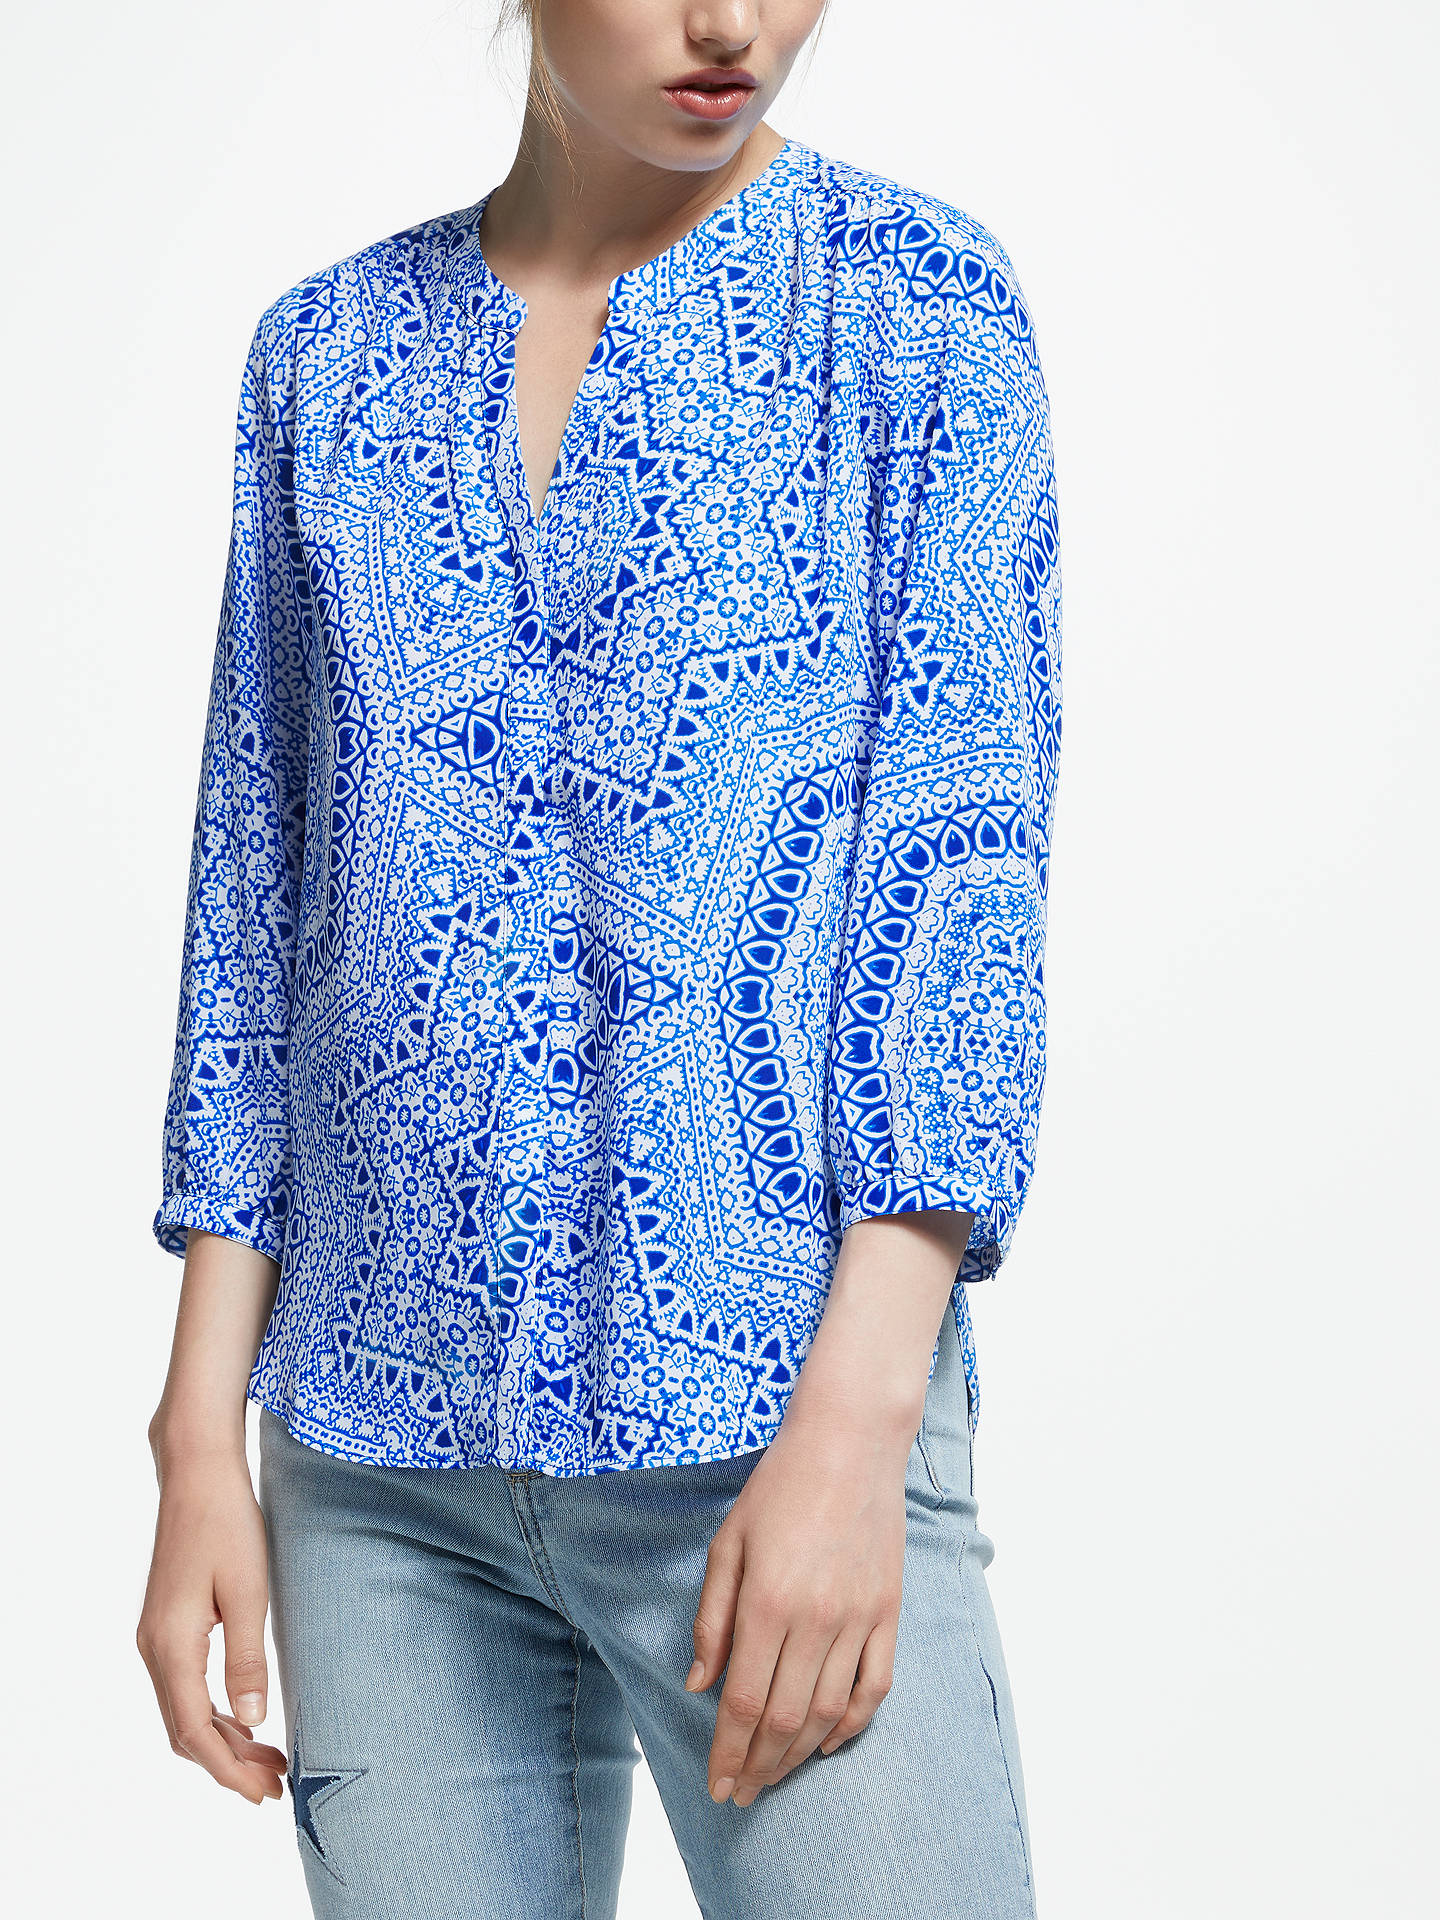 d673c156463c4c Buy NYDJ Pin Tuck Blouse, Celestial Sky Wave, S Online at johnlewis.com ...